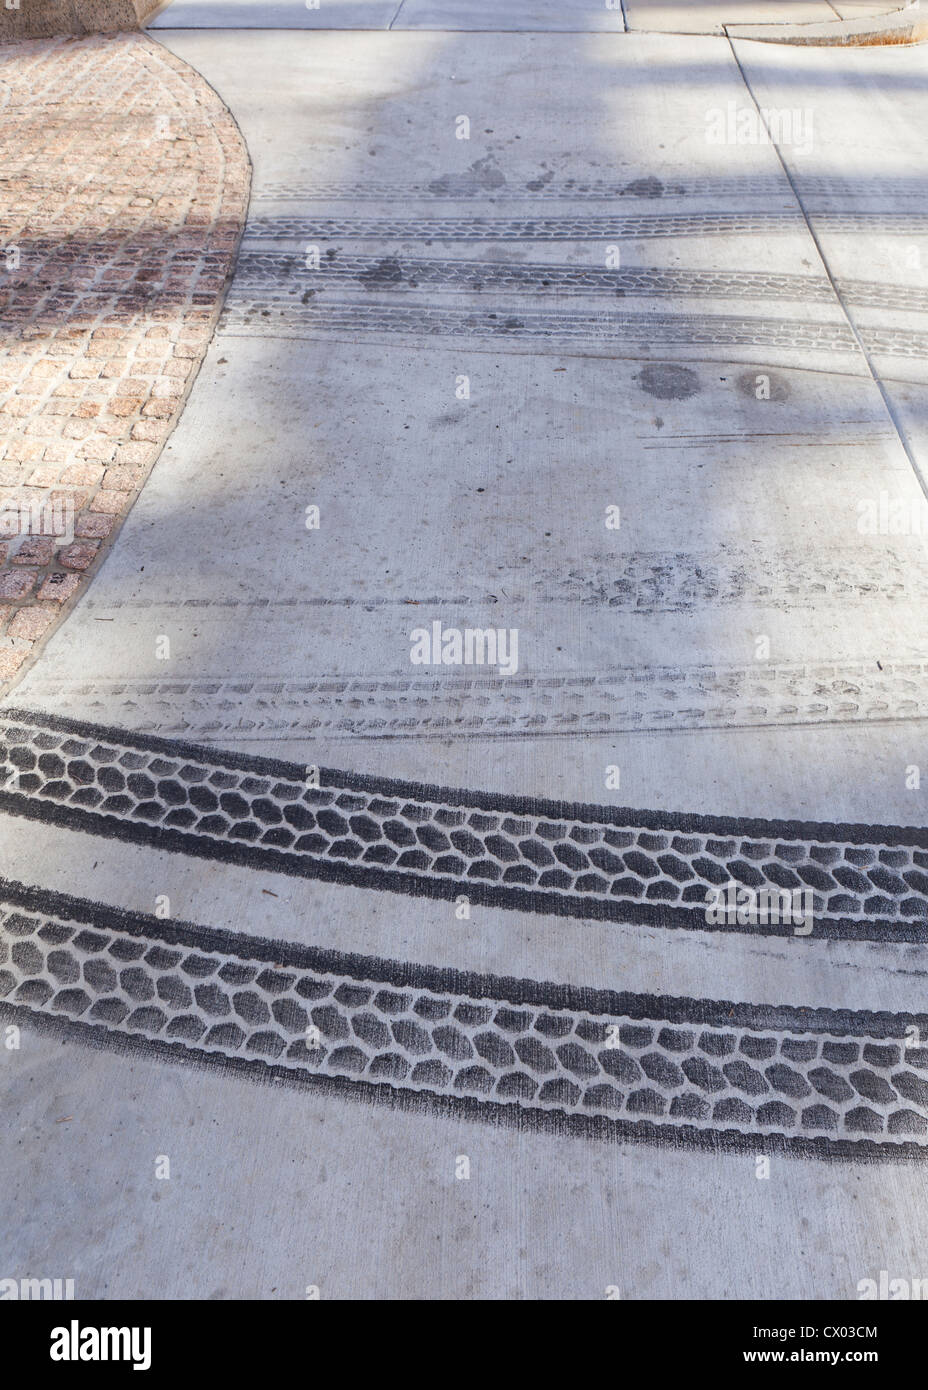 Tire tracks on pavement - Stock Image